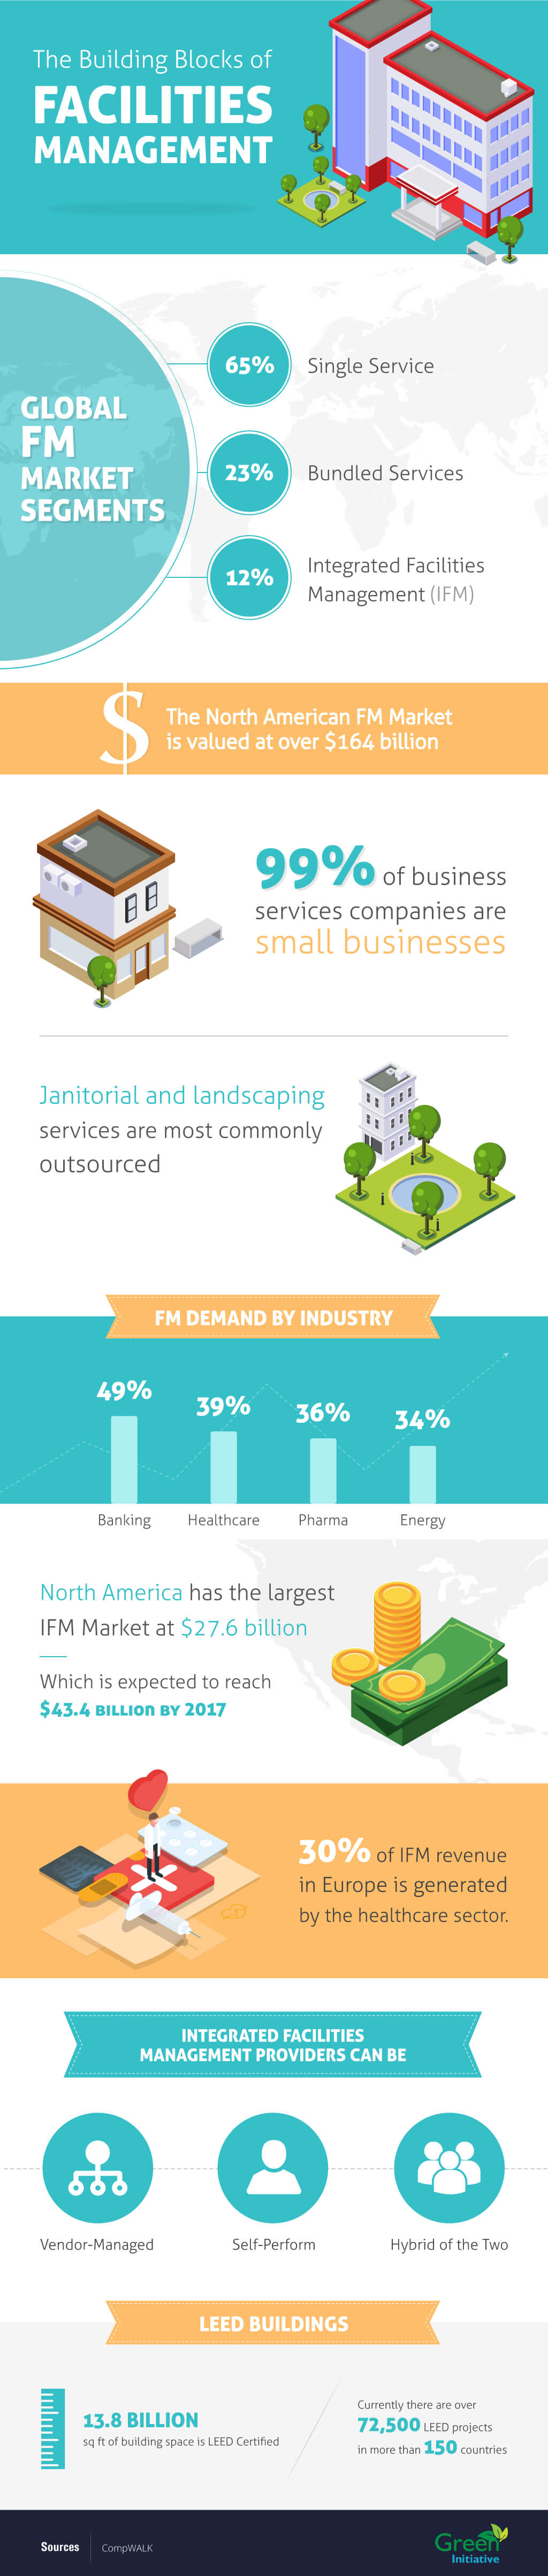 The Facilities Management Business in Dubai (Infographic)